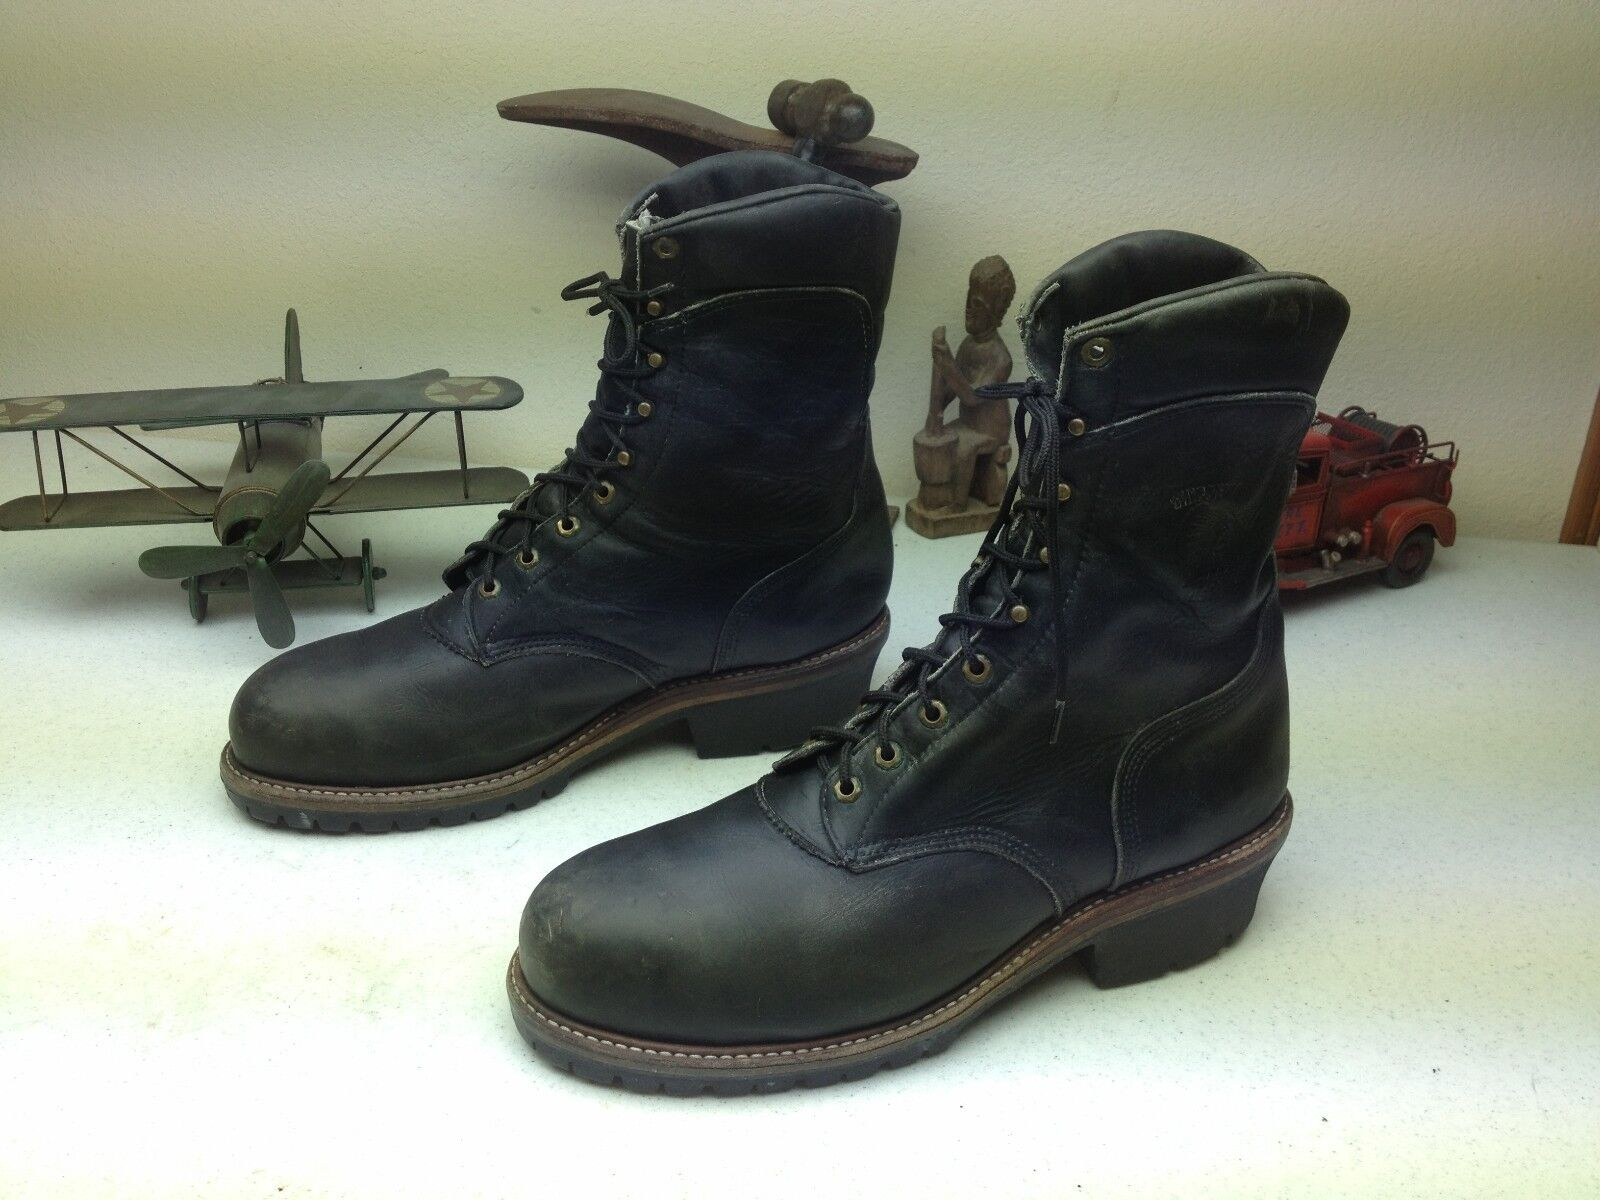 DISTRESSED BLACK MADE IN USA BLACK LOGGER STEEL TOE WORK BOOTS 14 E